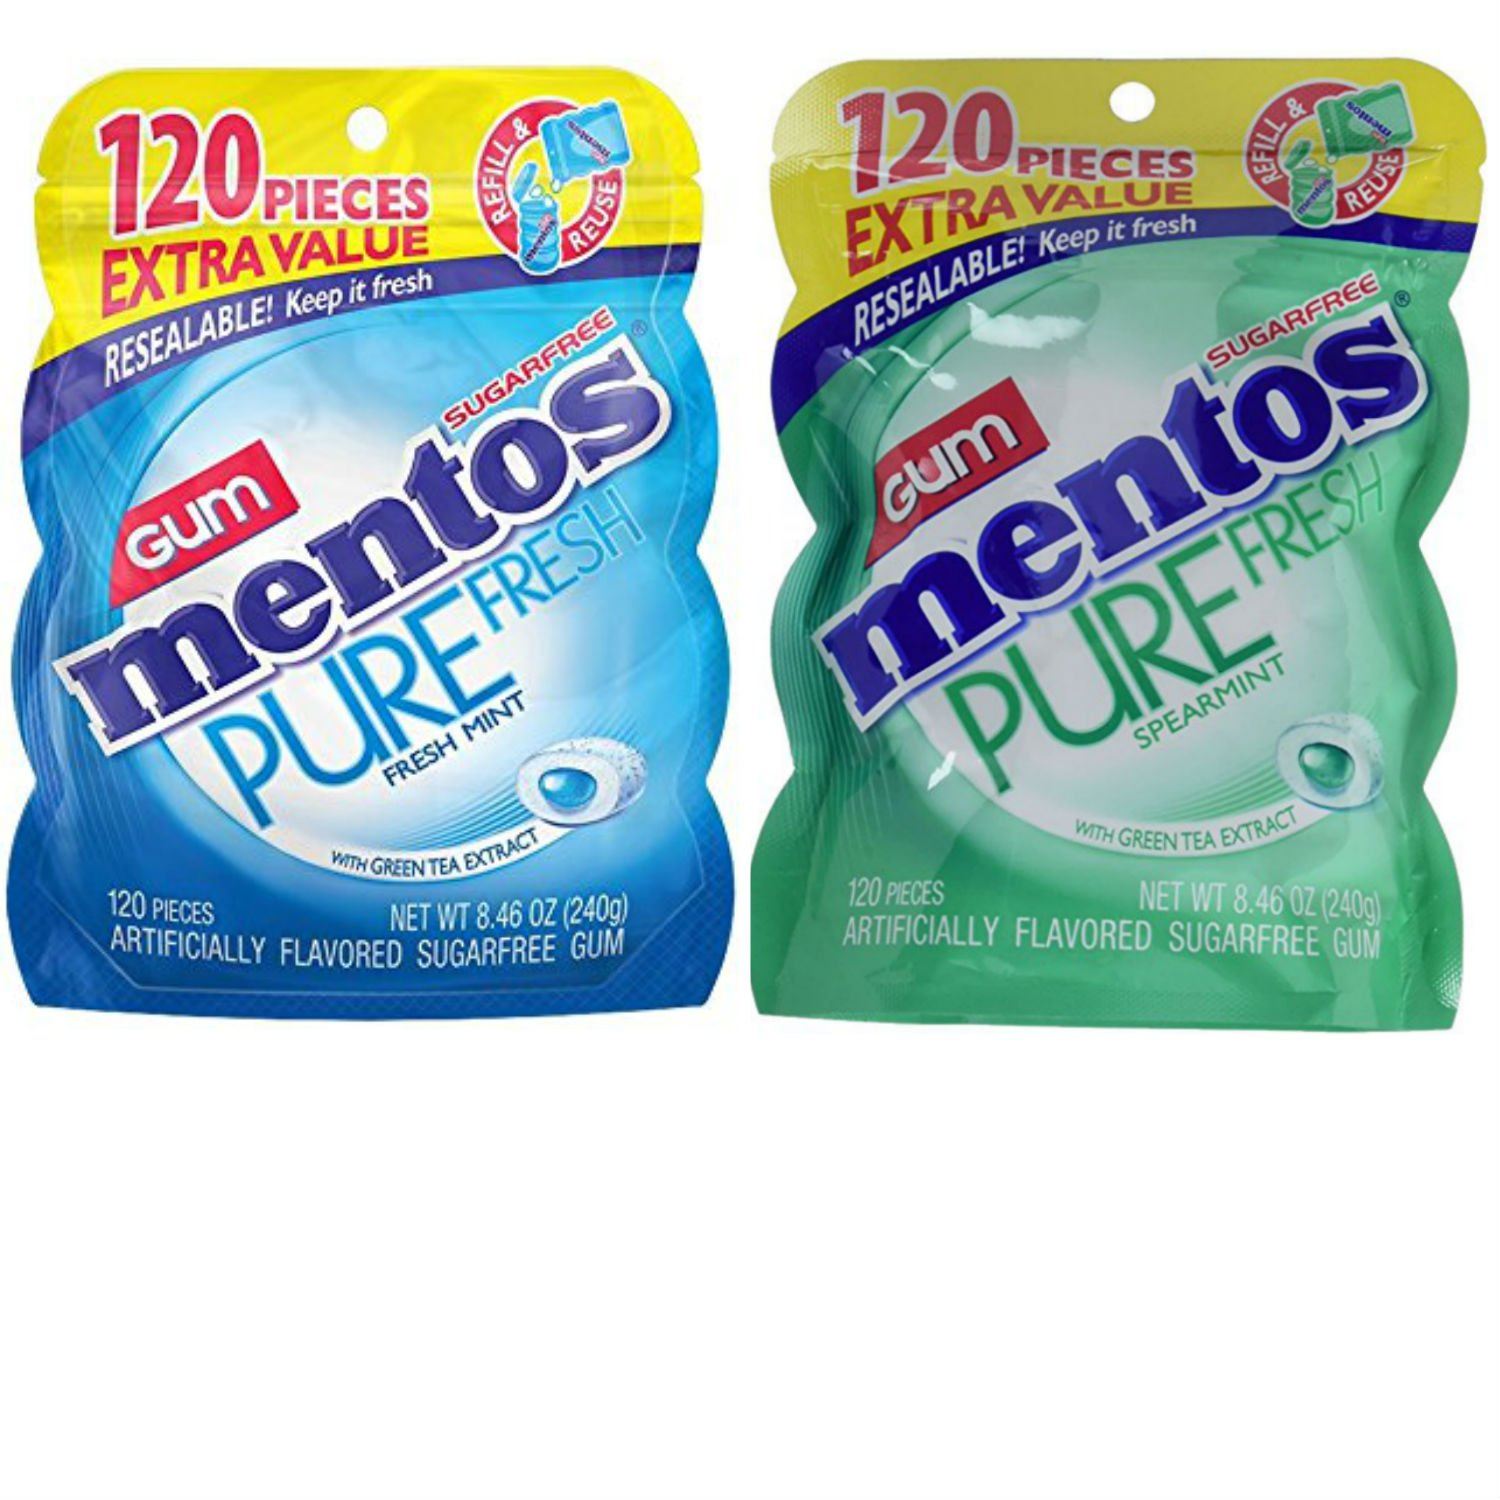 Mentos Pure-Fresh Spearmint and Fresh Mint Sugar-Free Gum Variety Pack. Convenient One-Stop Shopping. Easy To Source With 1 Click. Snacking Heaven